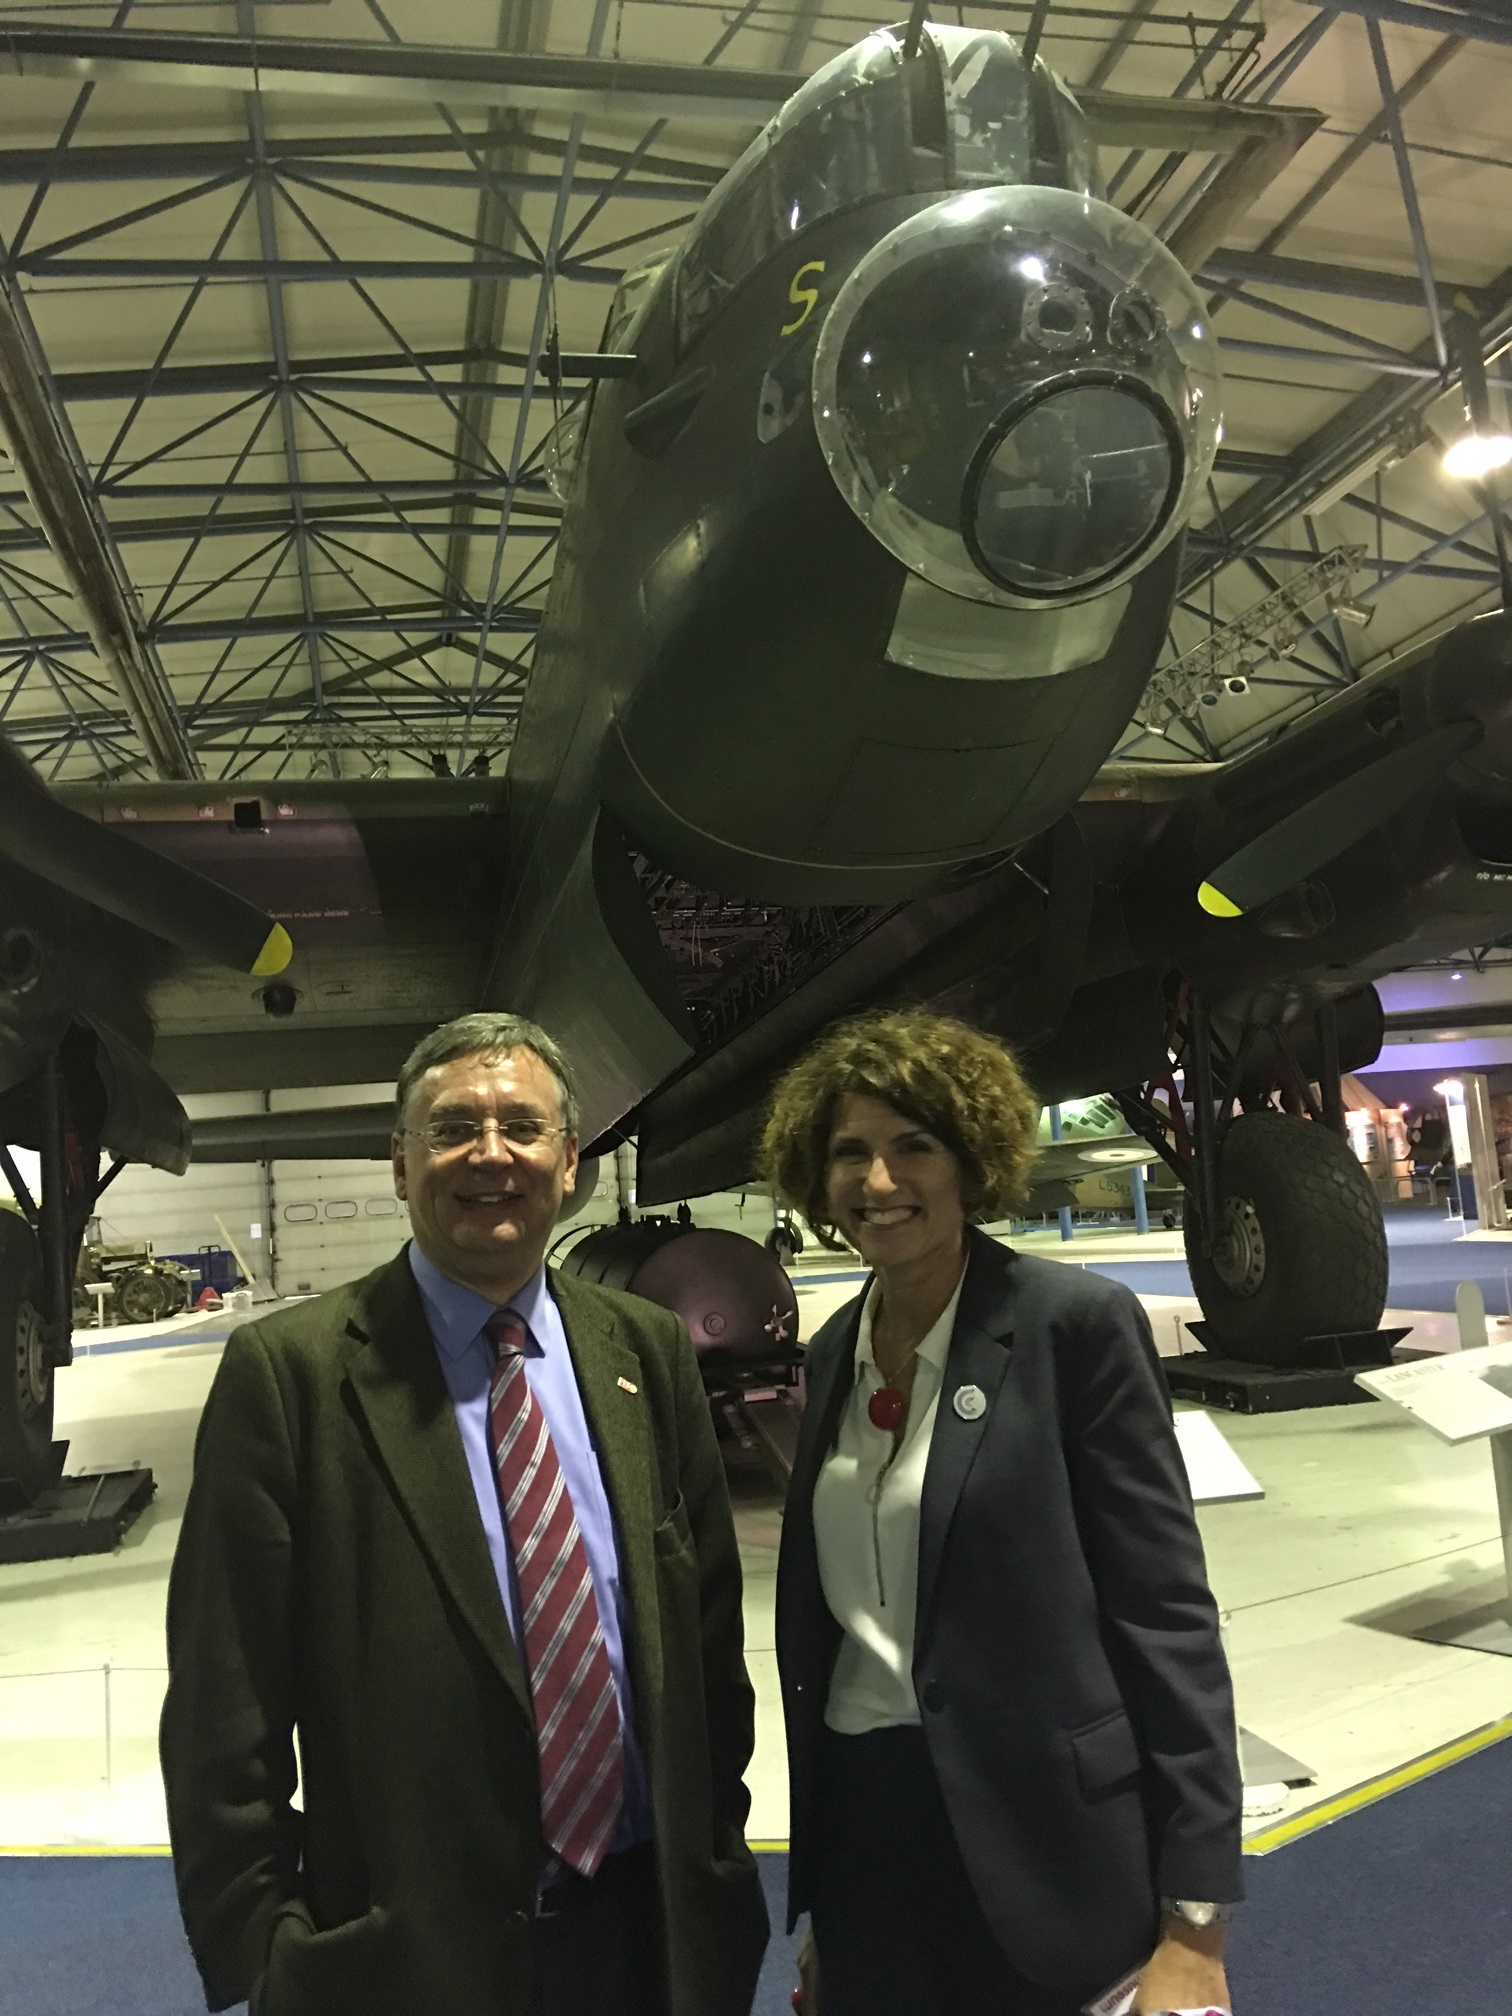 Andrew Dismore AM and Maggie Appleton MBE